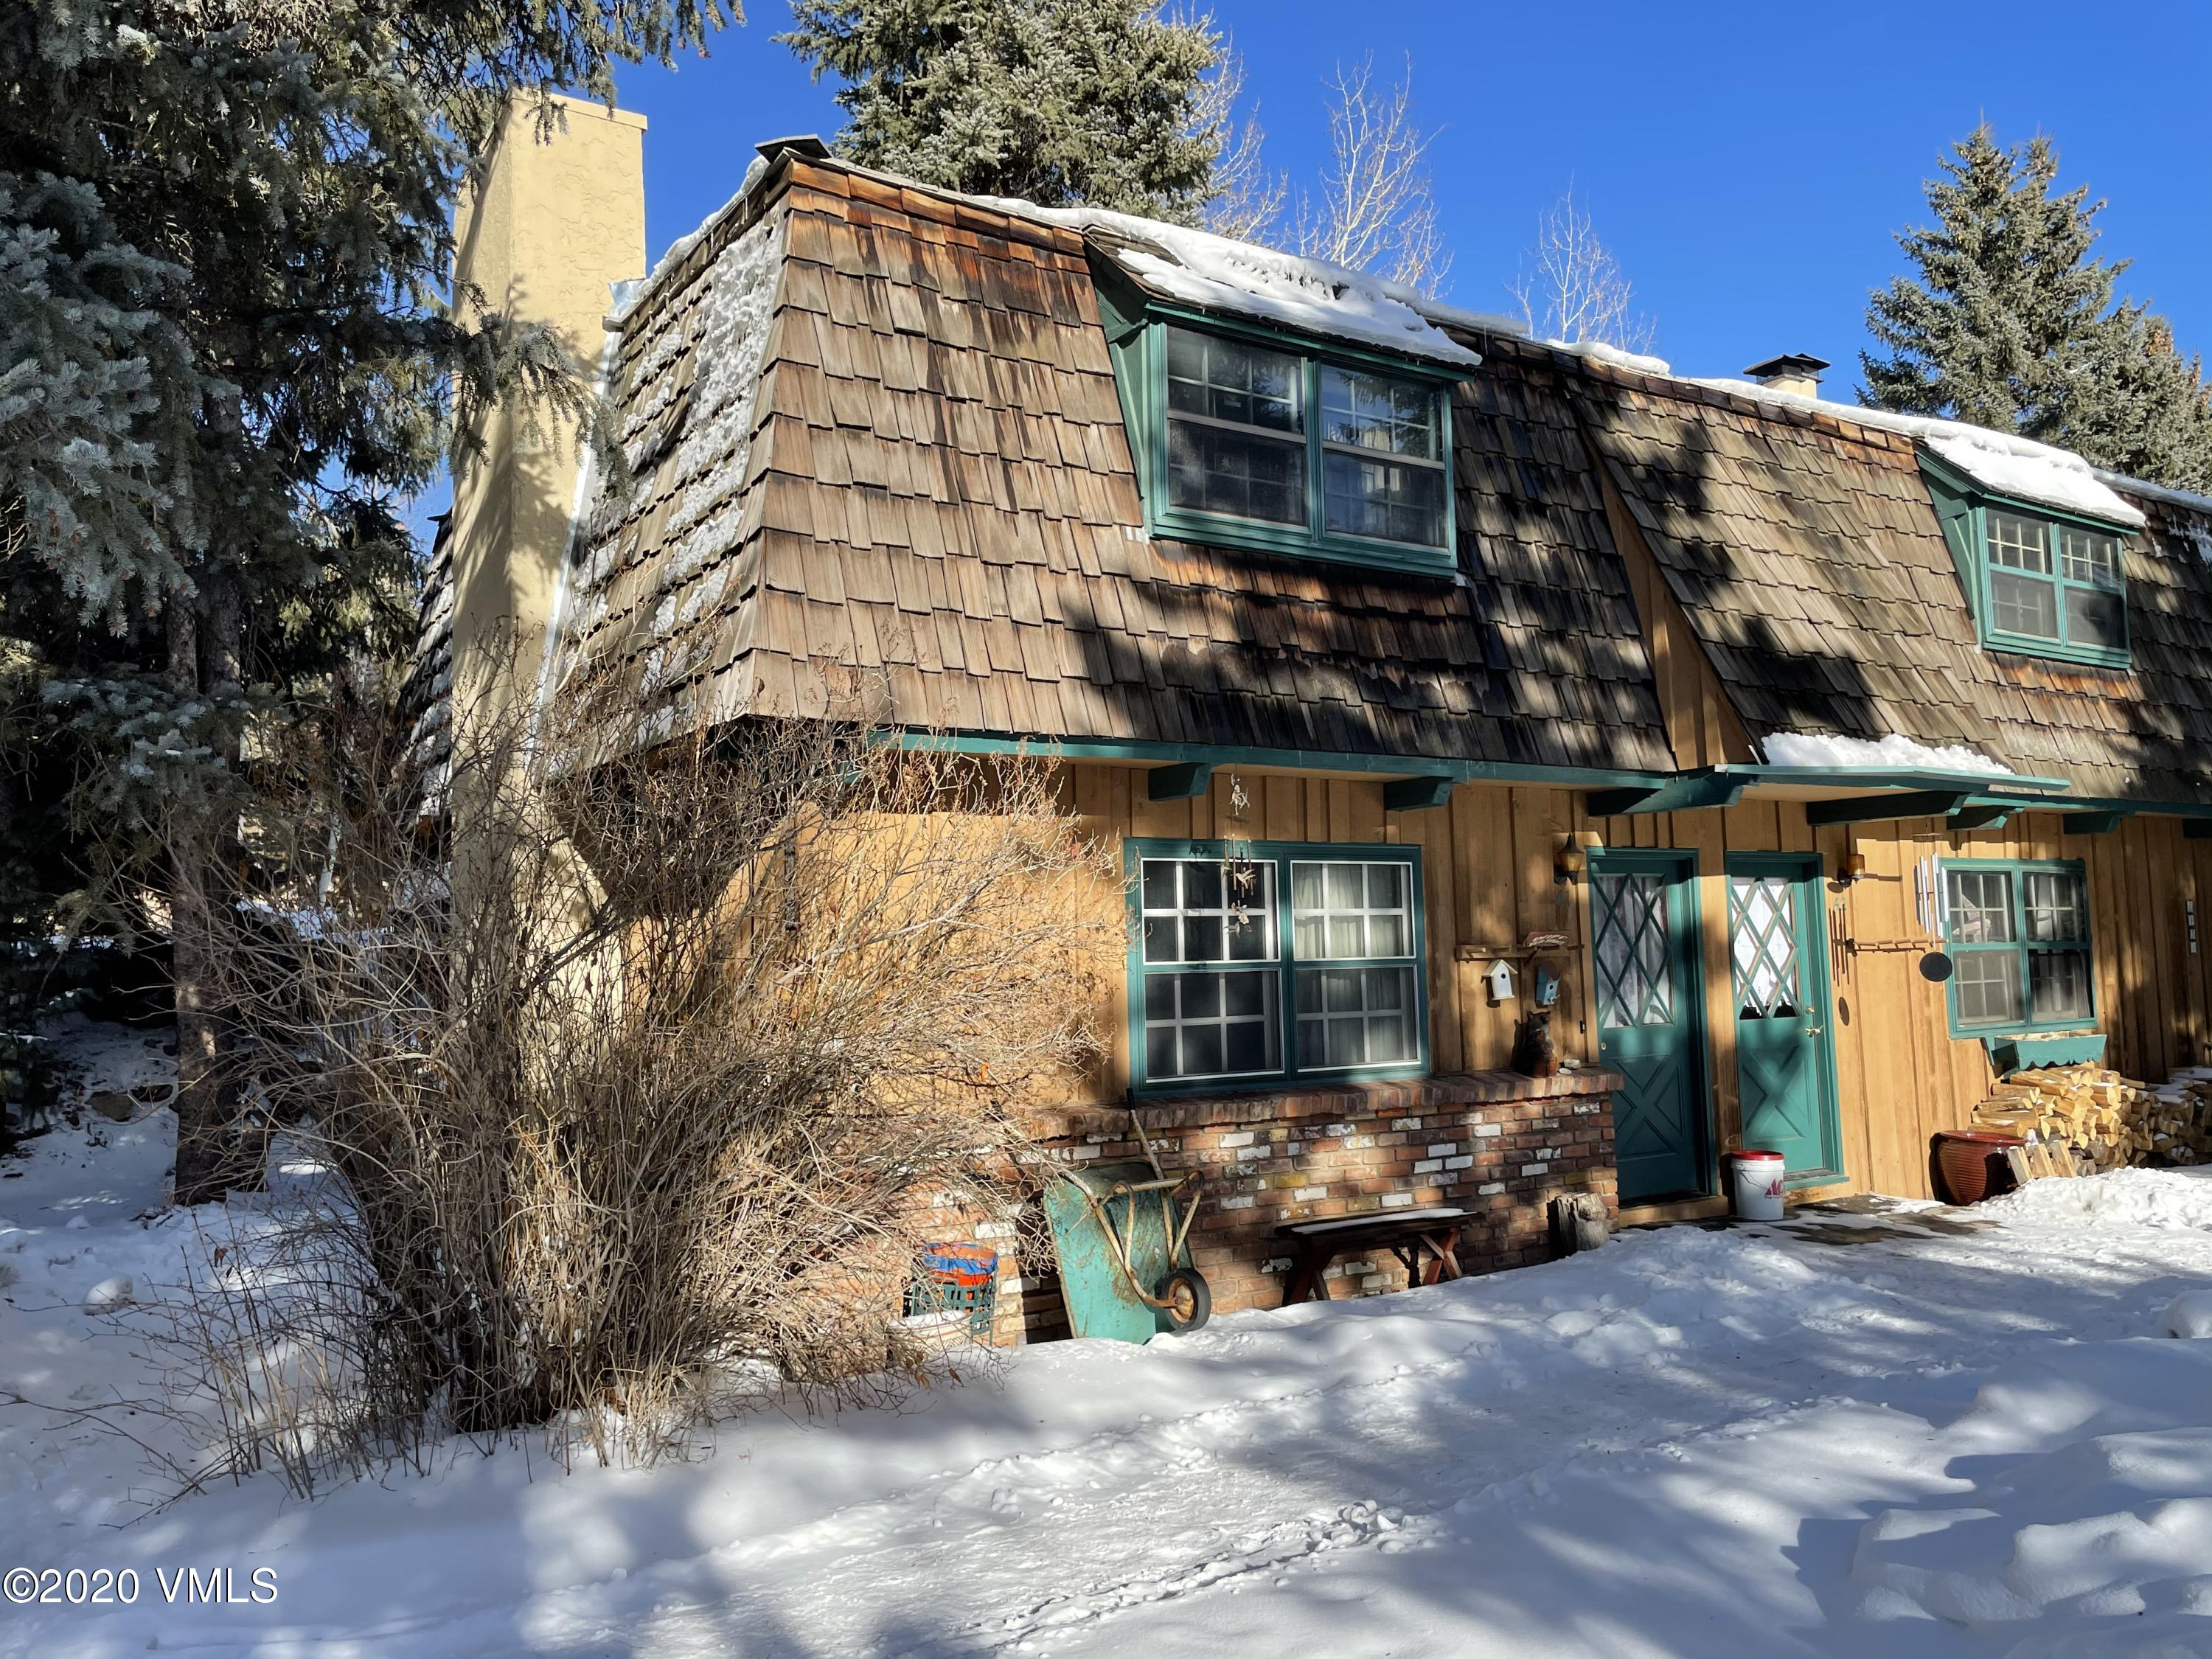 Great small home in Vail Valley. Quiet location located in West Vail. Steps from free Vail bus stop, short 2 min drive to grocery store, restaurants and other amenities. Wood burning fireplace for cold winter days, and a nice patio for enjoying the warmer months.